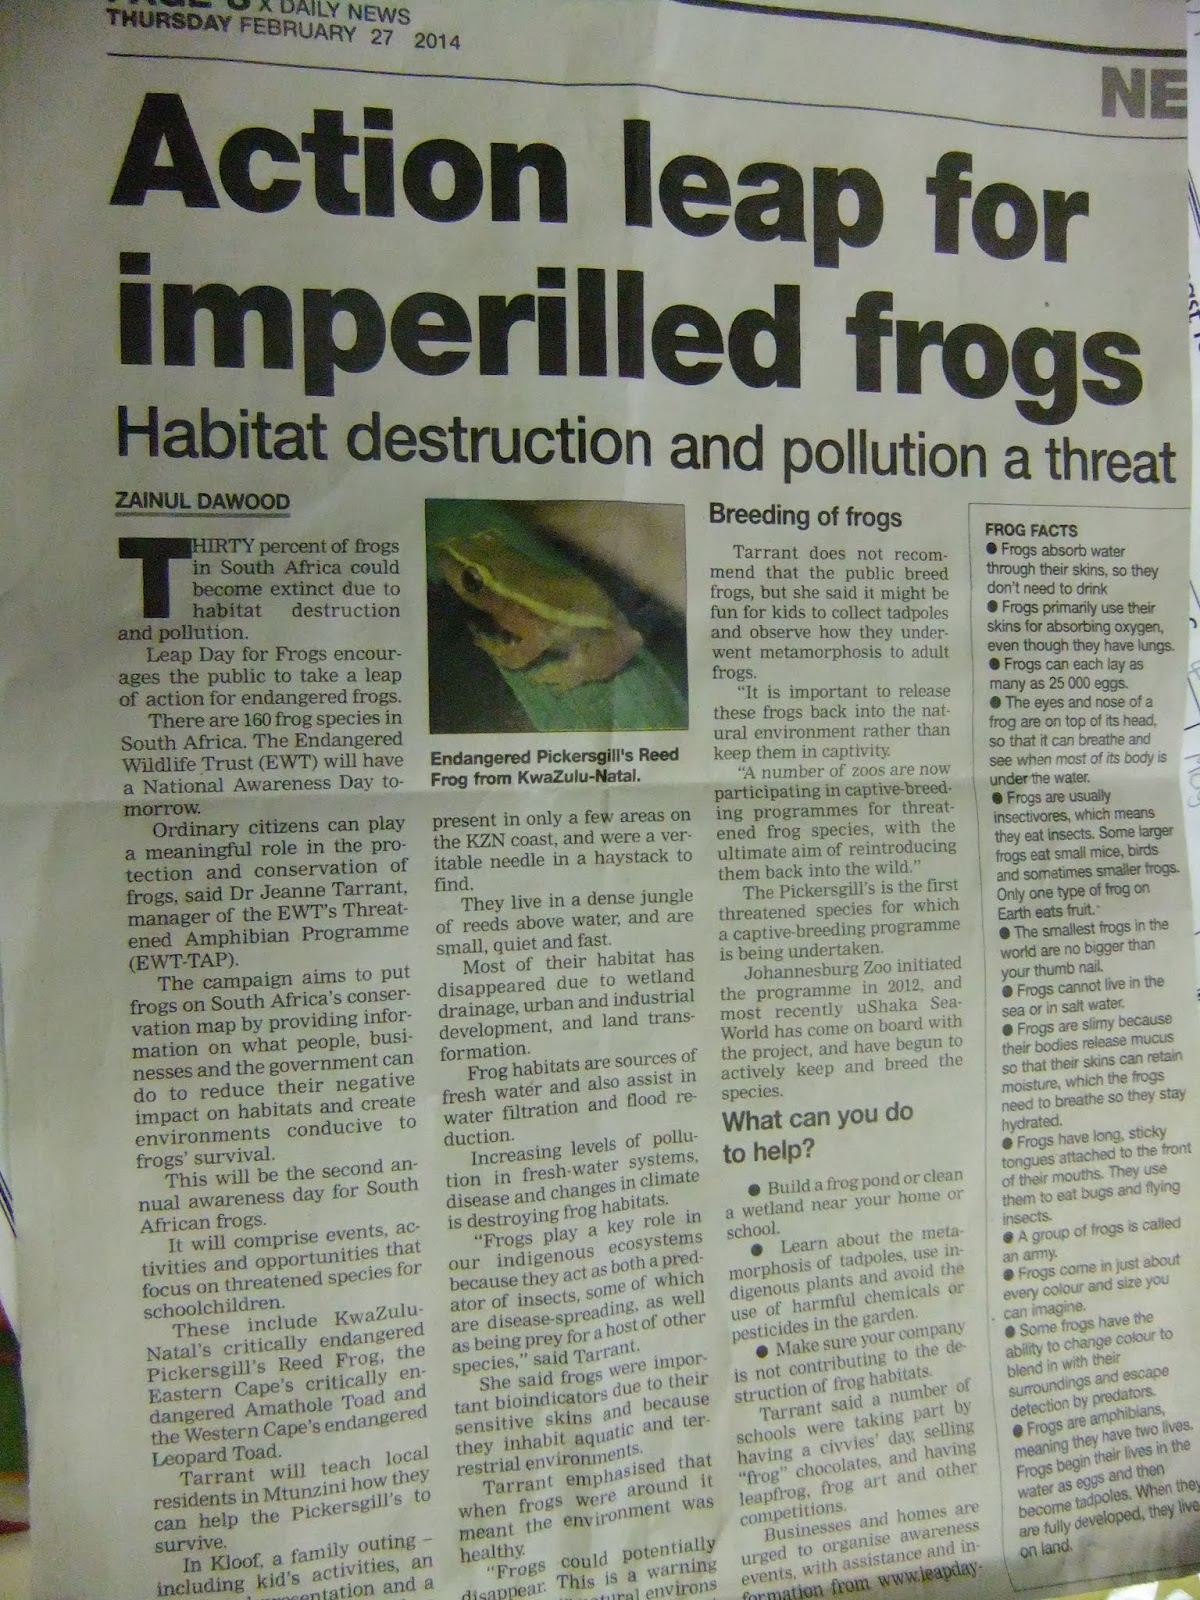 news guide with biodiversity